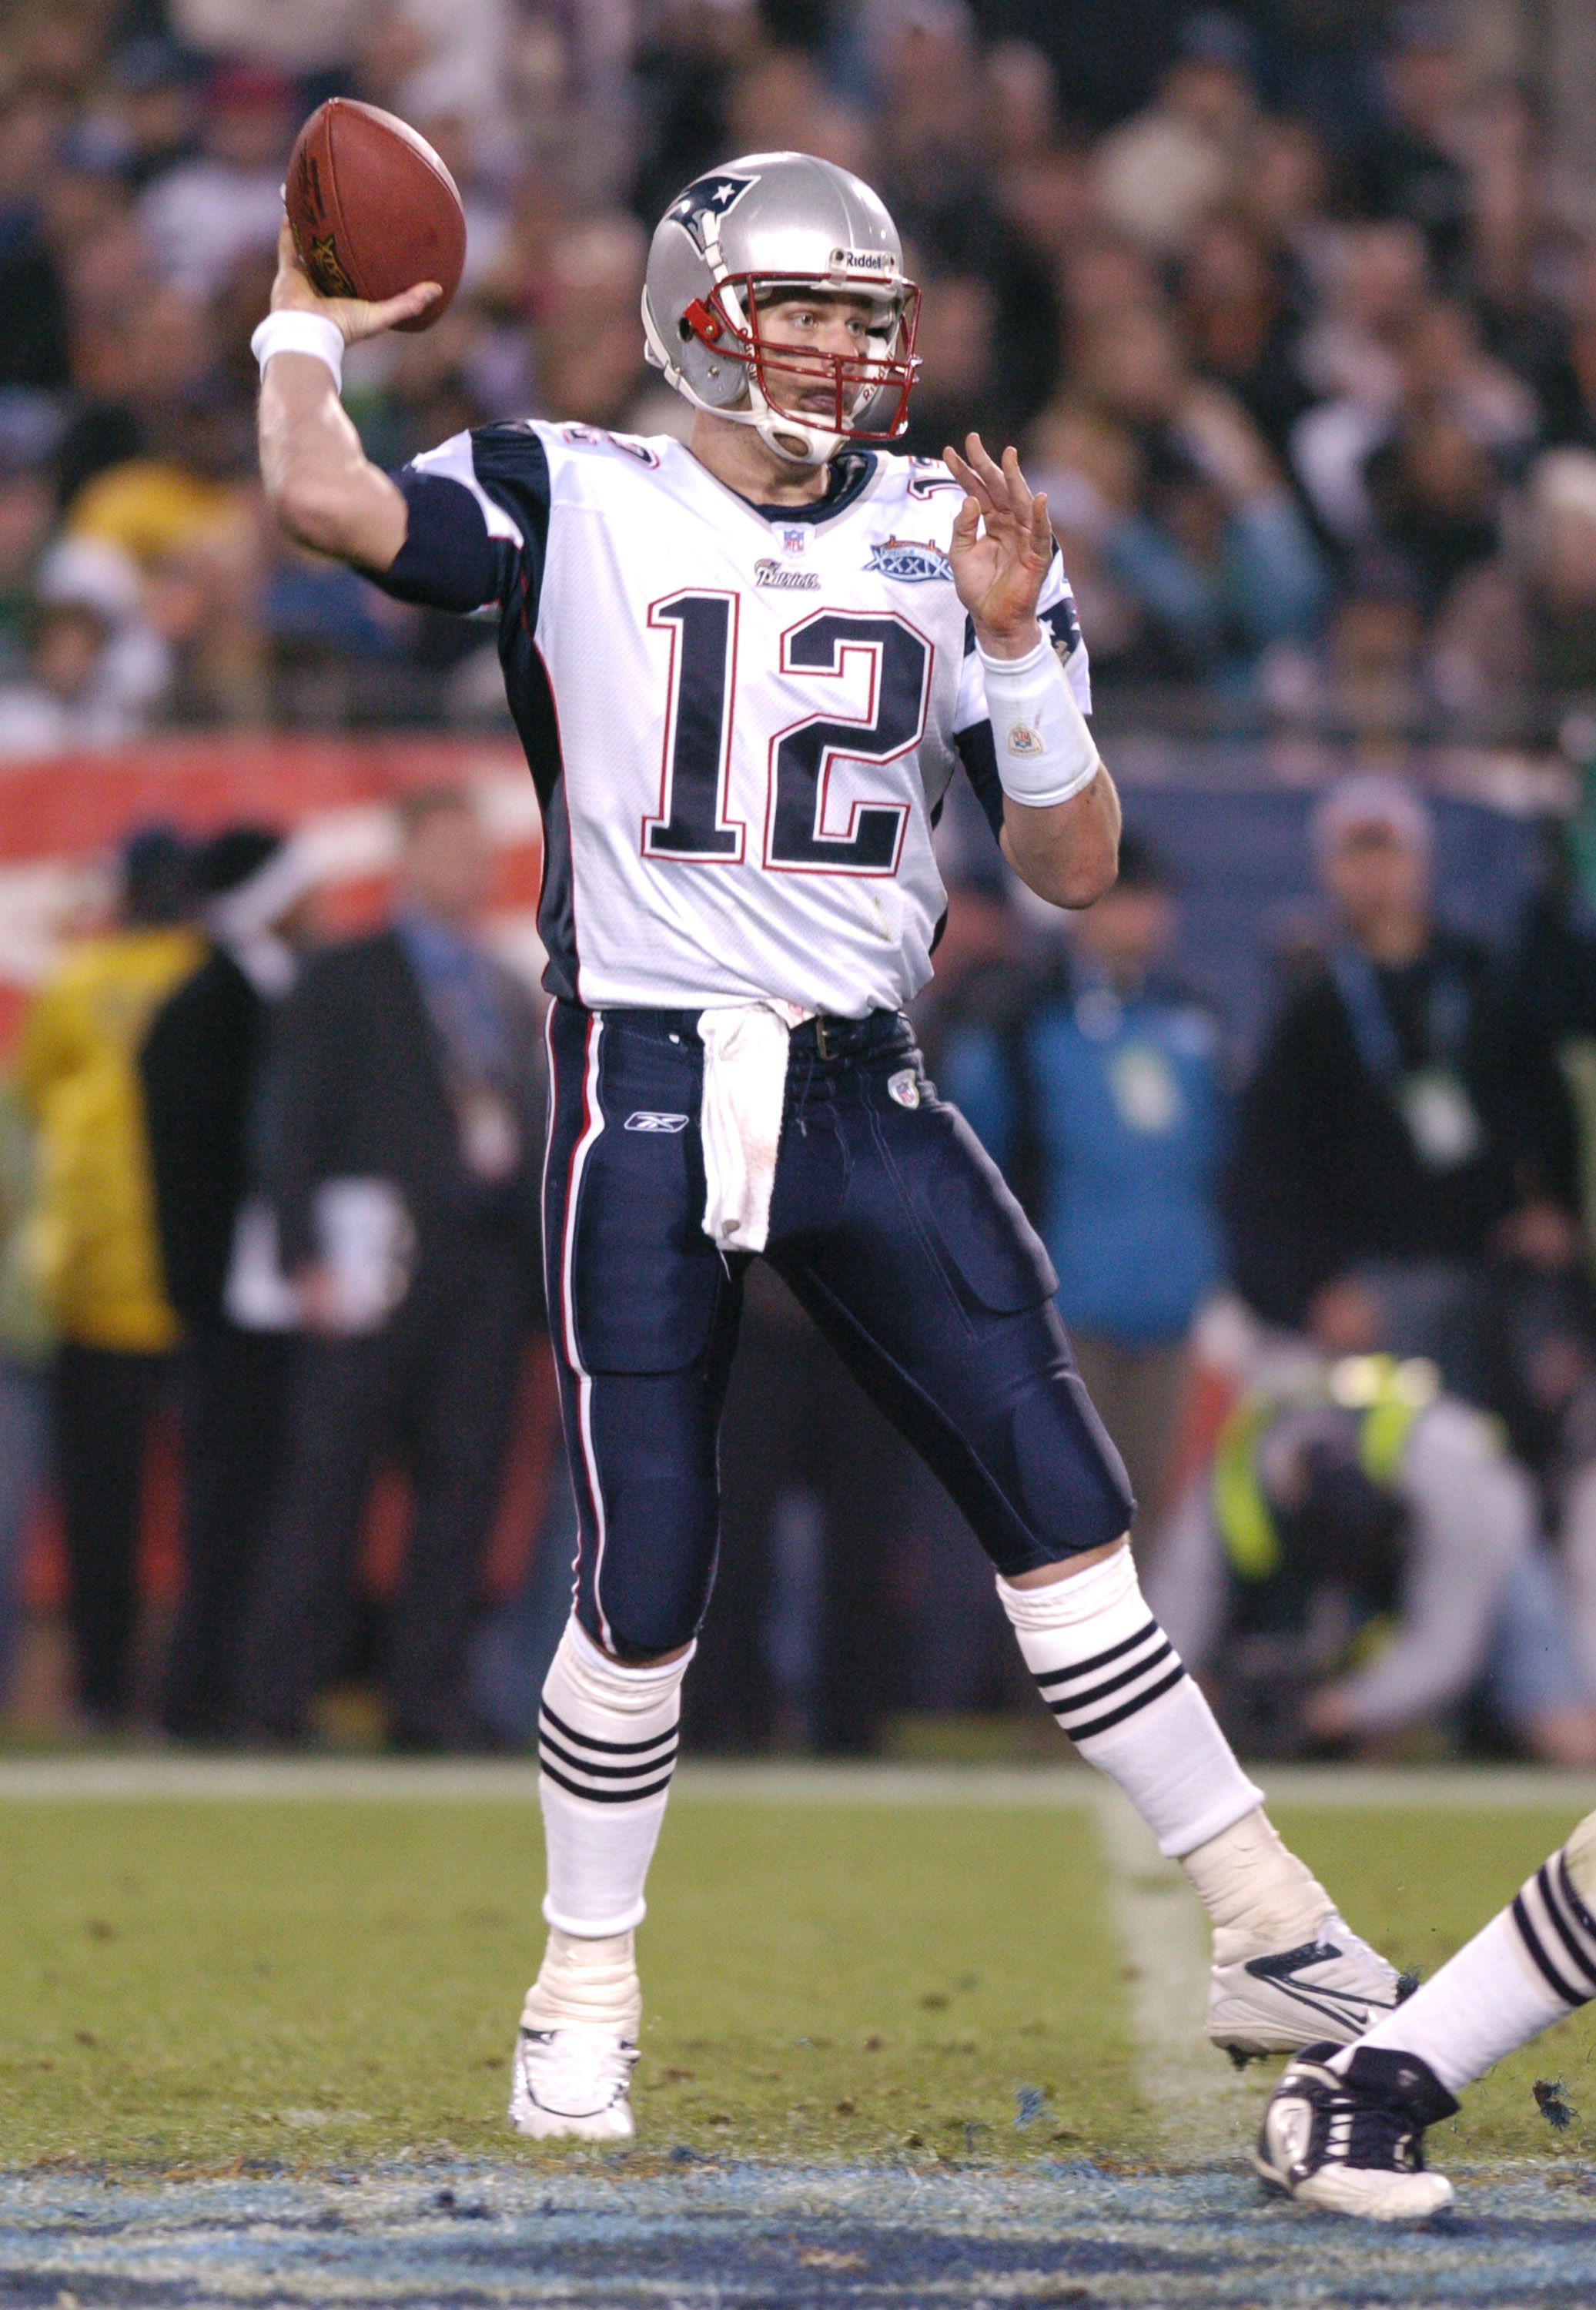 New England Patriots QB Tom Brady #12 with the ball during Super Bowl XXXIX between the Philadelphia Eagles and the New England Patriots at Alltel Stadium in Jacksonville, Florida on February 6, 2005.  (Photo by Al Messerschmidt/Getty Images)